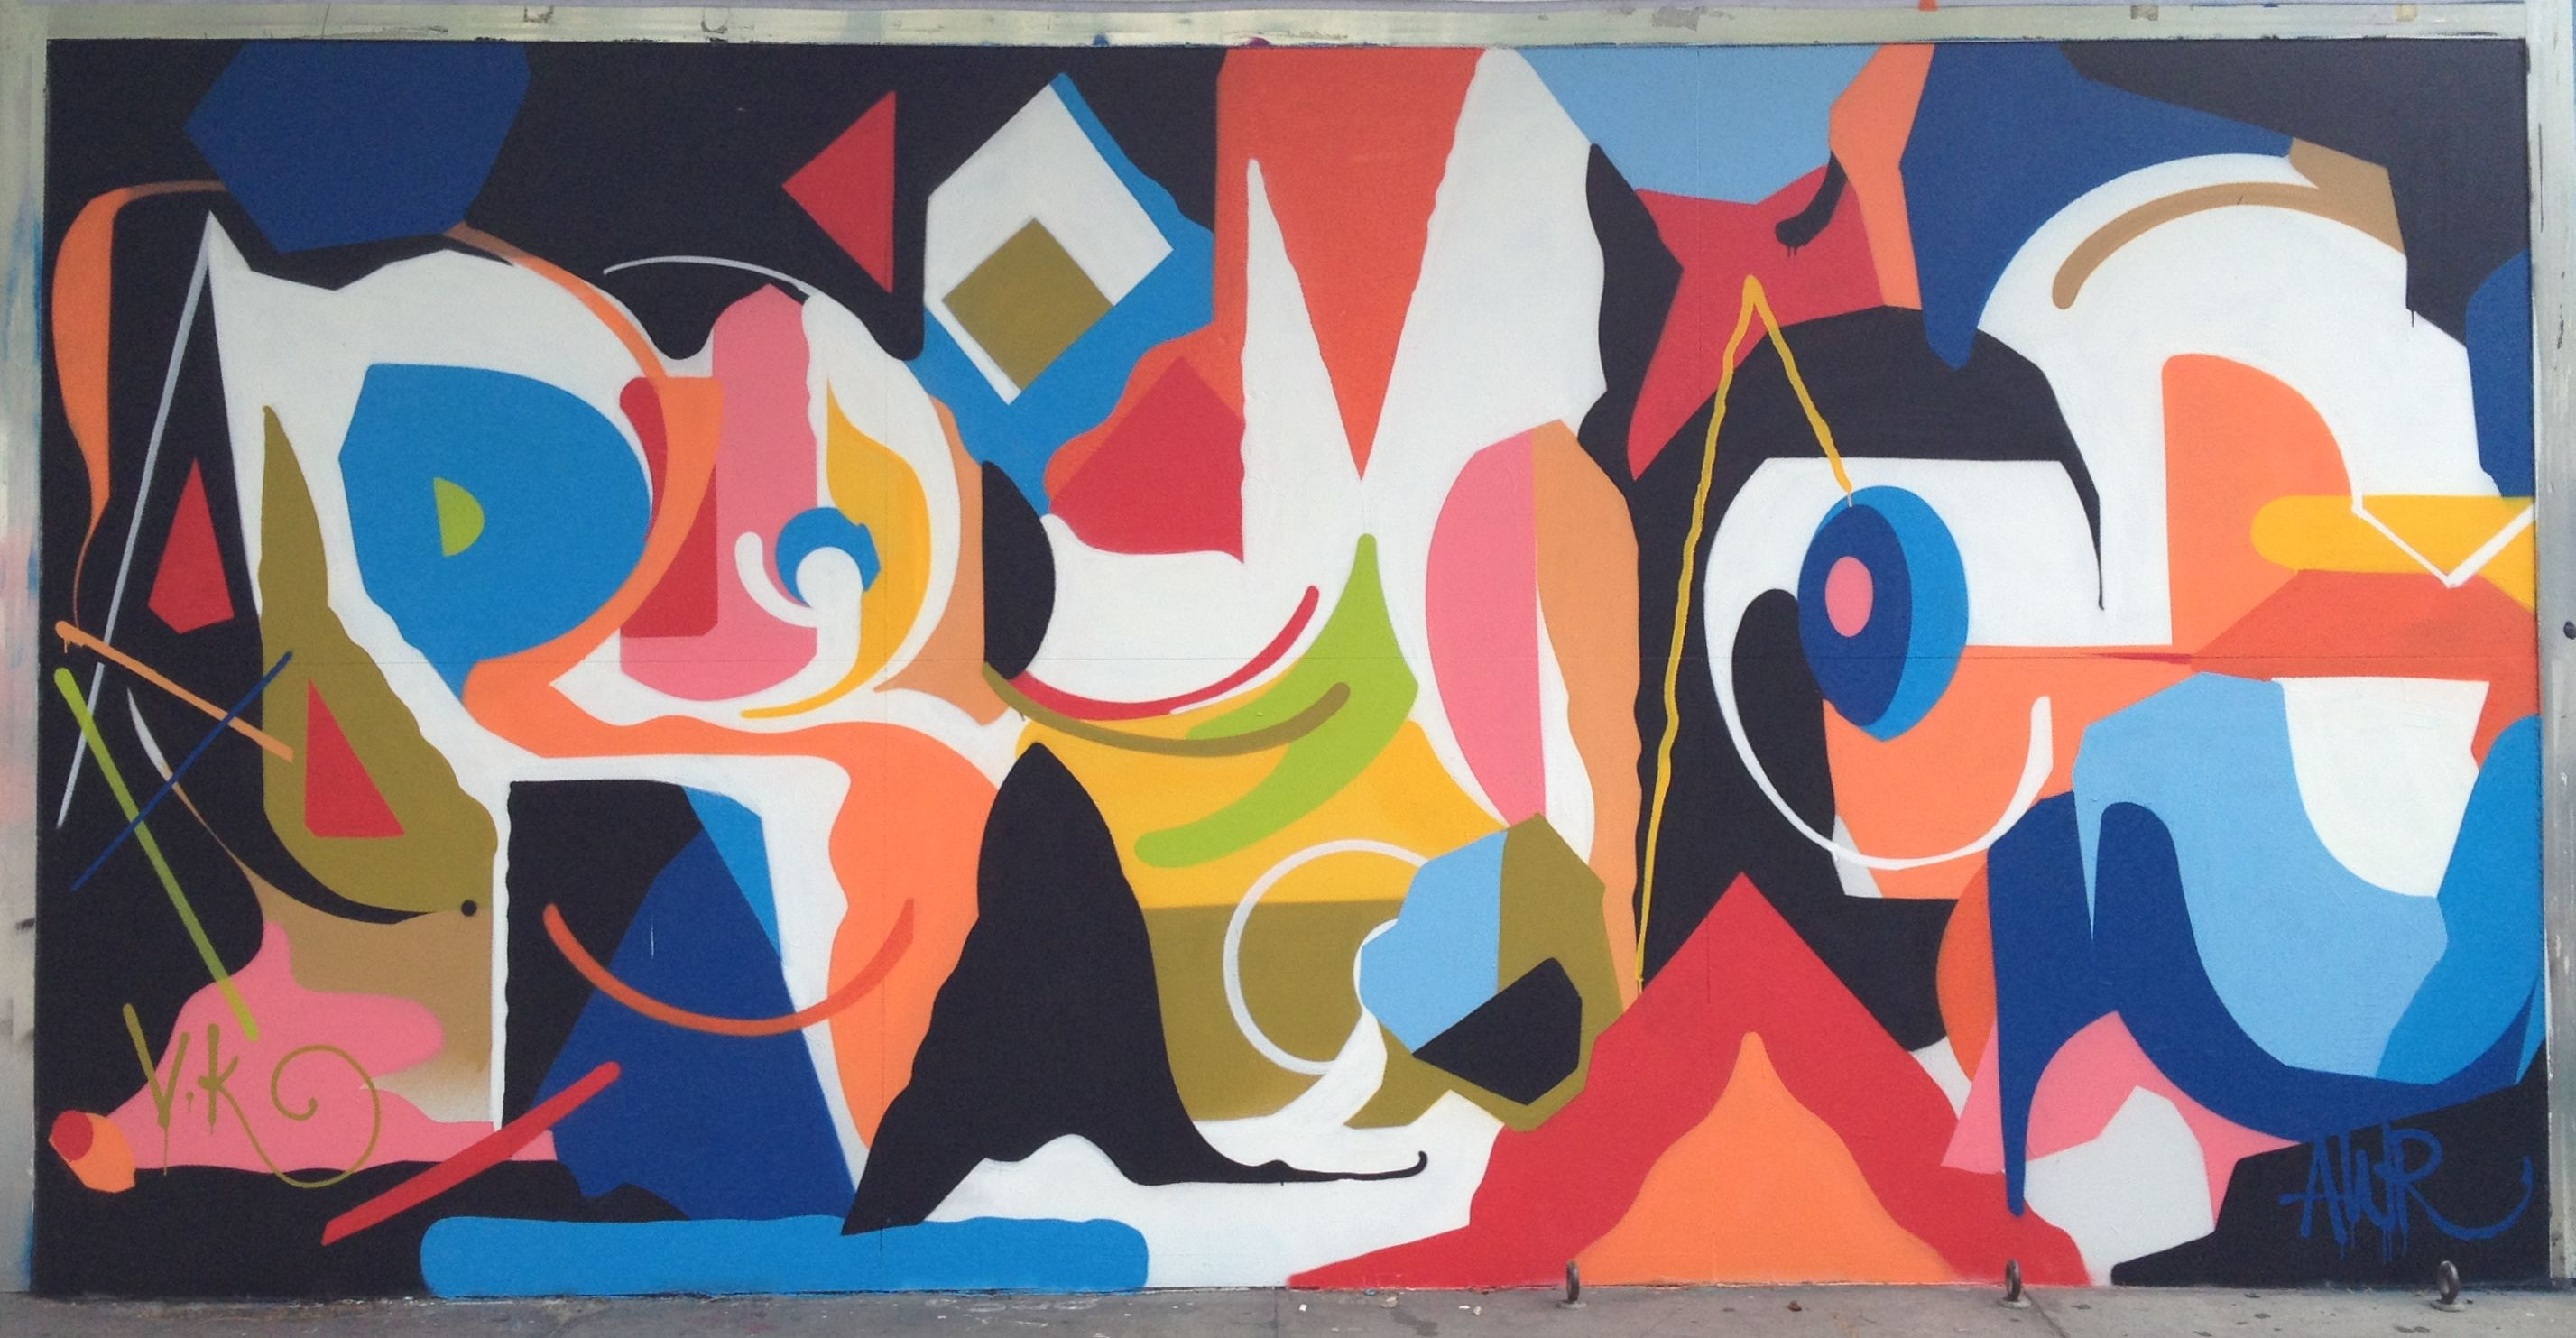 Victor Reyes New Mural At Flax Flax Art Amp Design